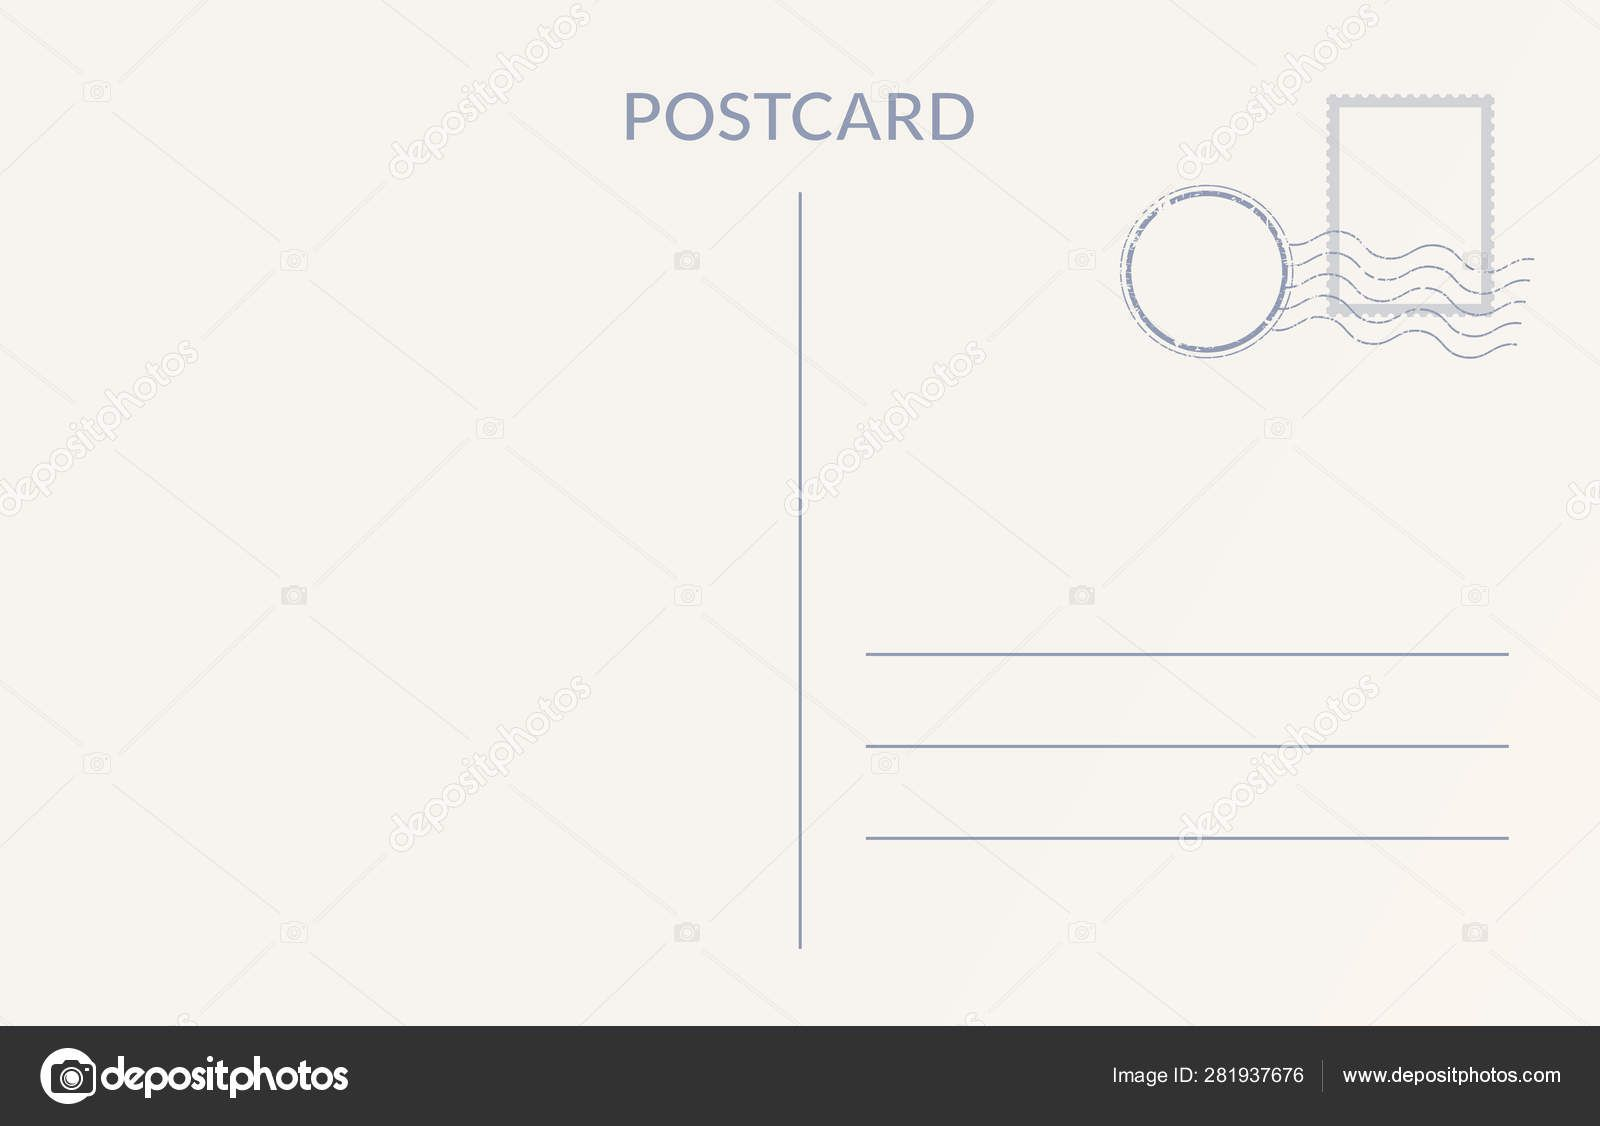 008 Impressive Postcard Template Front And Back Example  Free WordFull